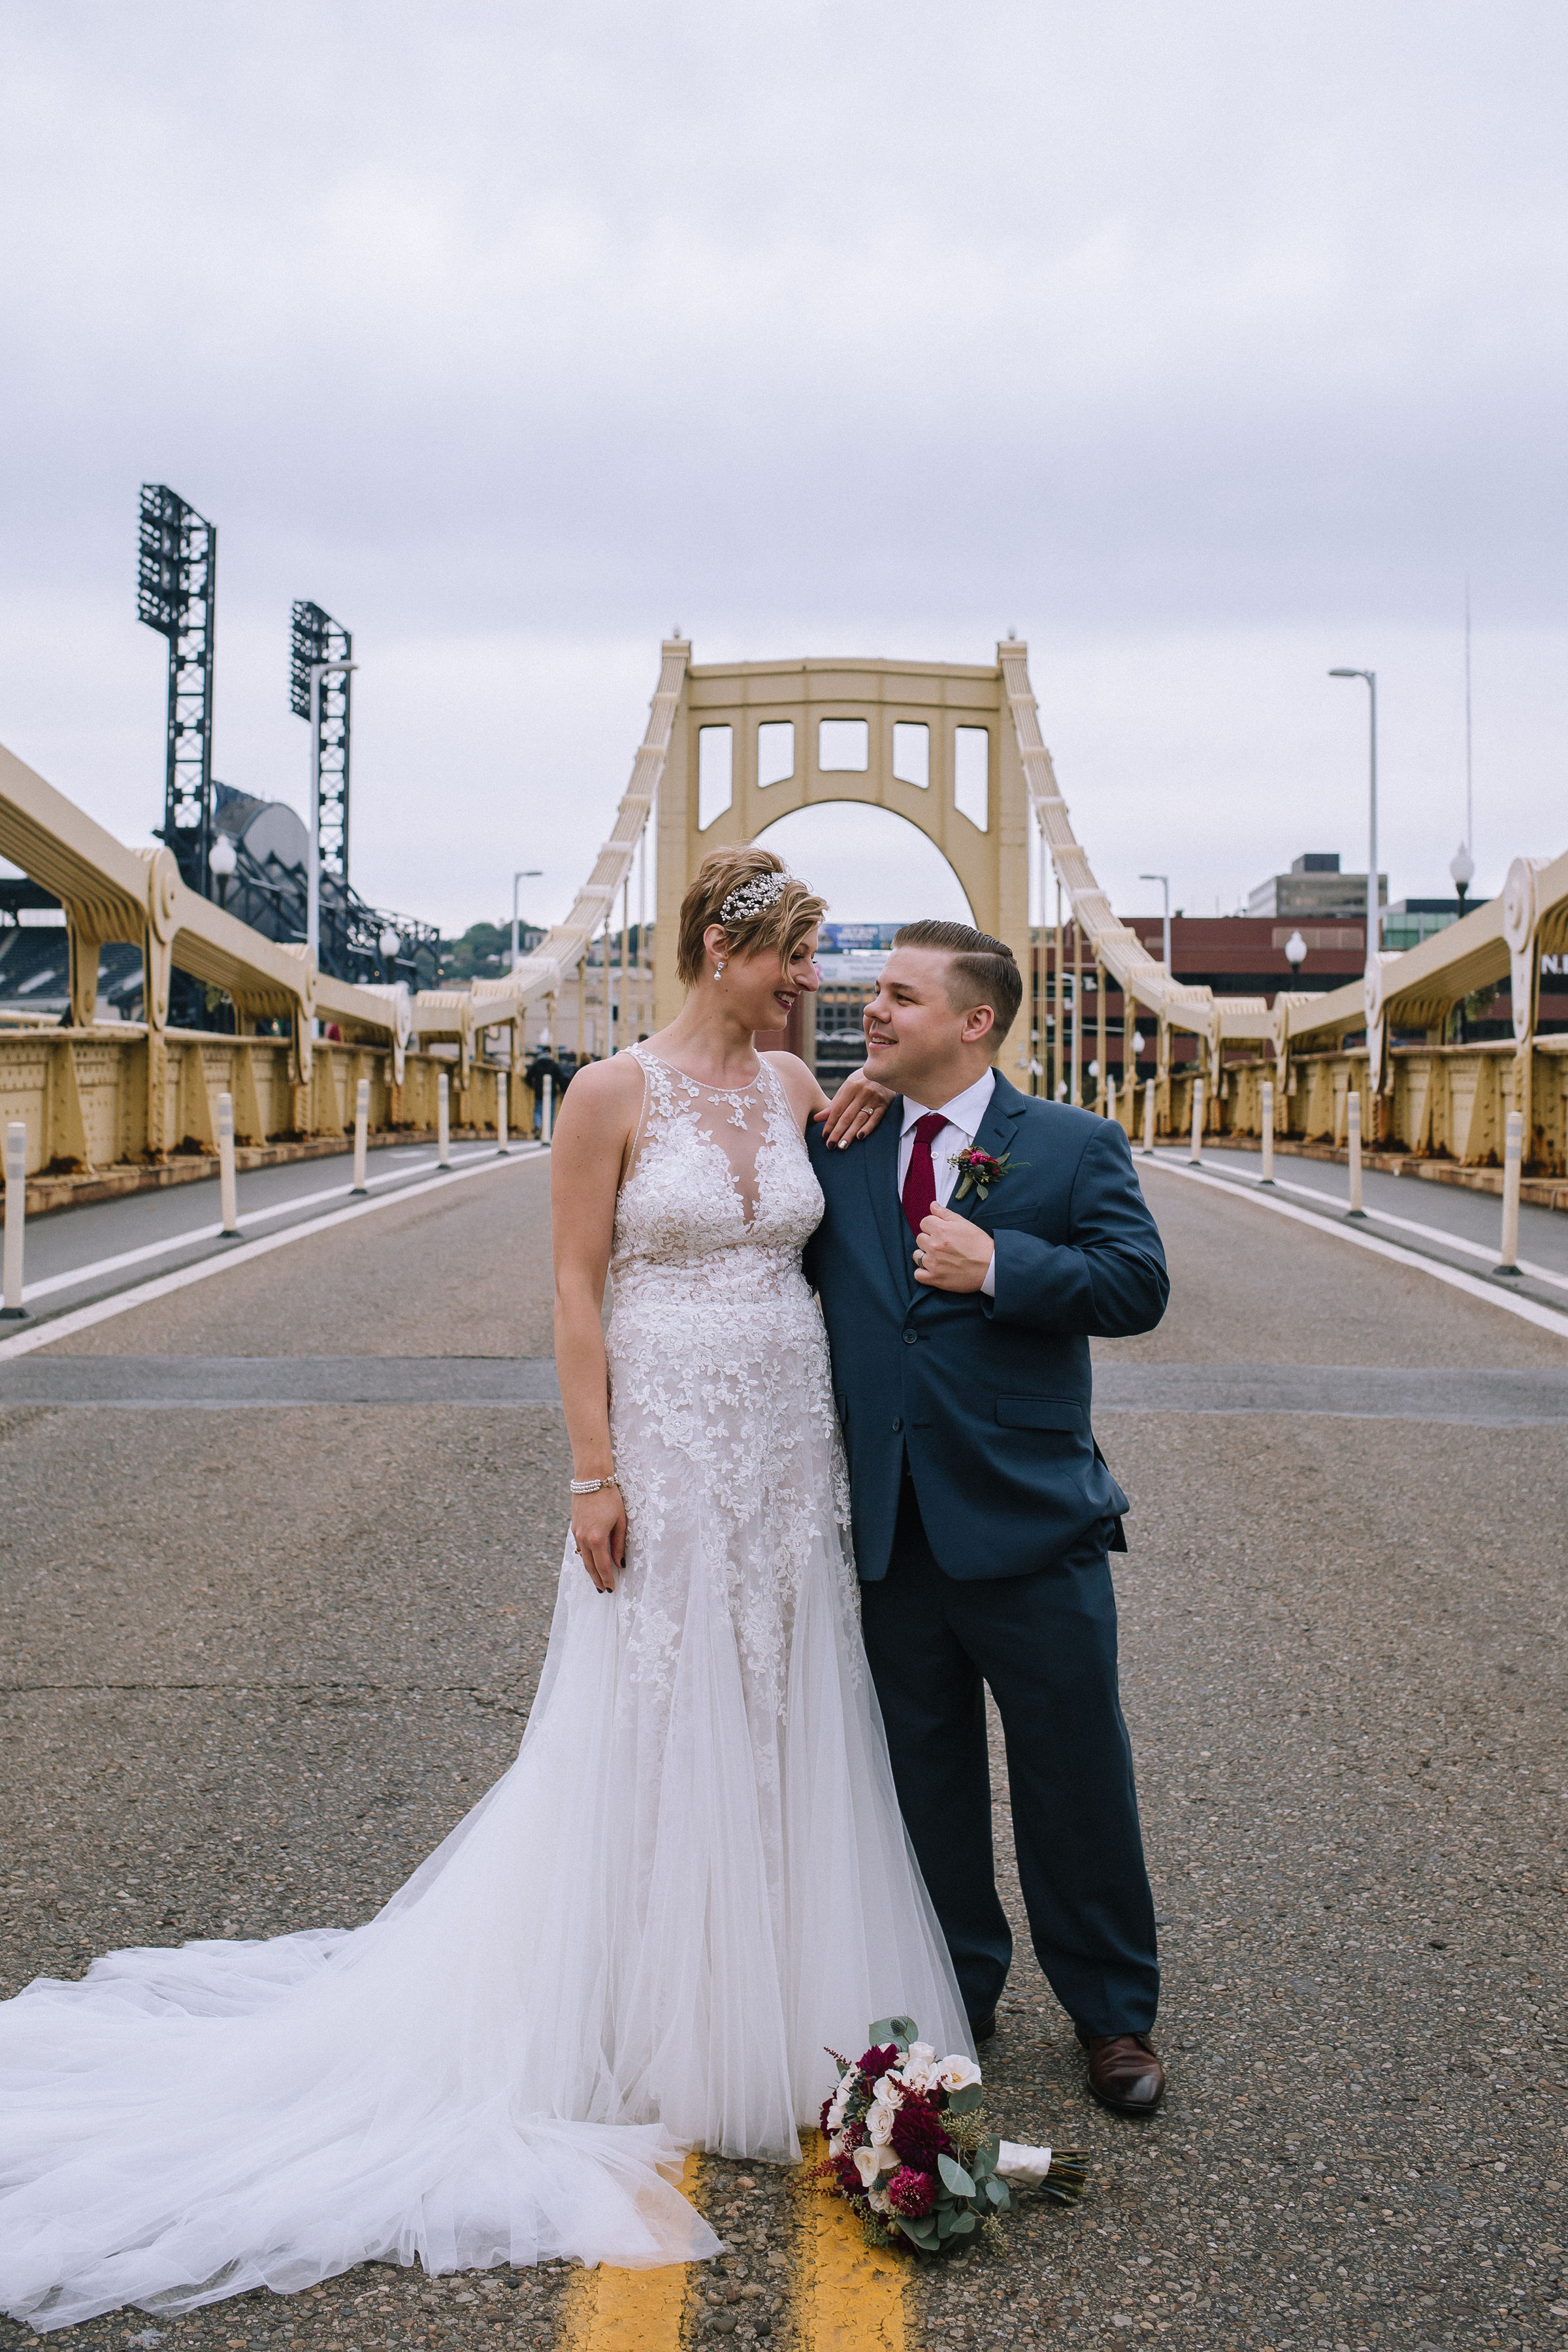 Bride and groom pose for wedding photos on bridge at Pittsburgh wedding at Studio Slate planned by Exhale Events. Find more wedding inspiration at exhale-events.com!